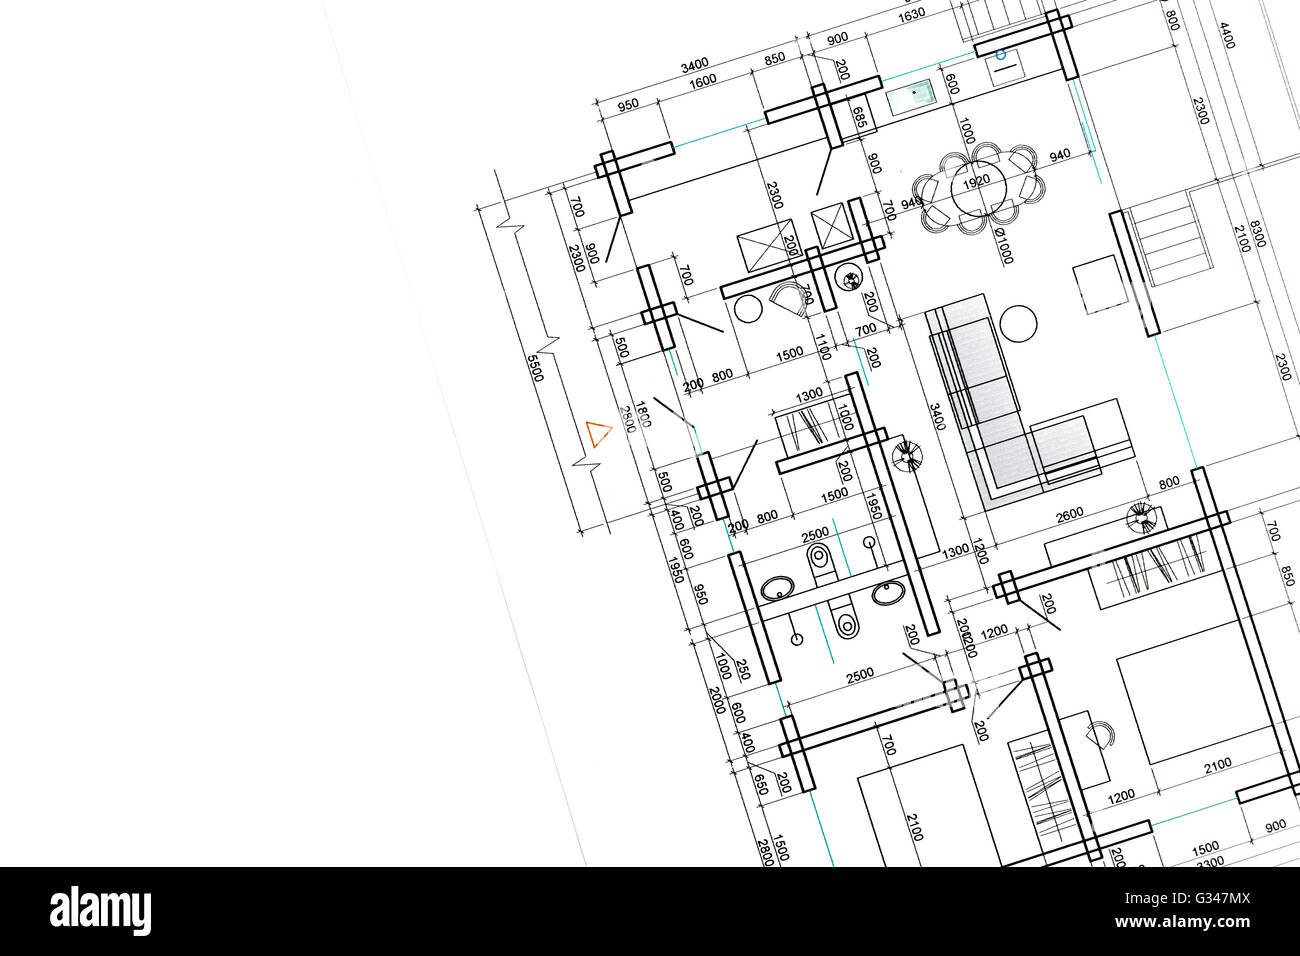 House plan blueprint architectural drawing part of architectural house plan blueprint architectural drawing part of architectural project malvernweather Images